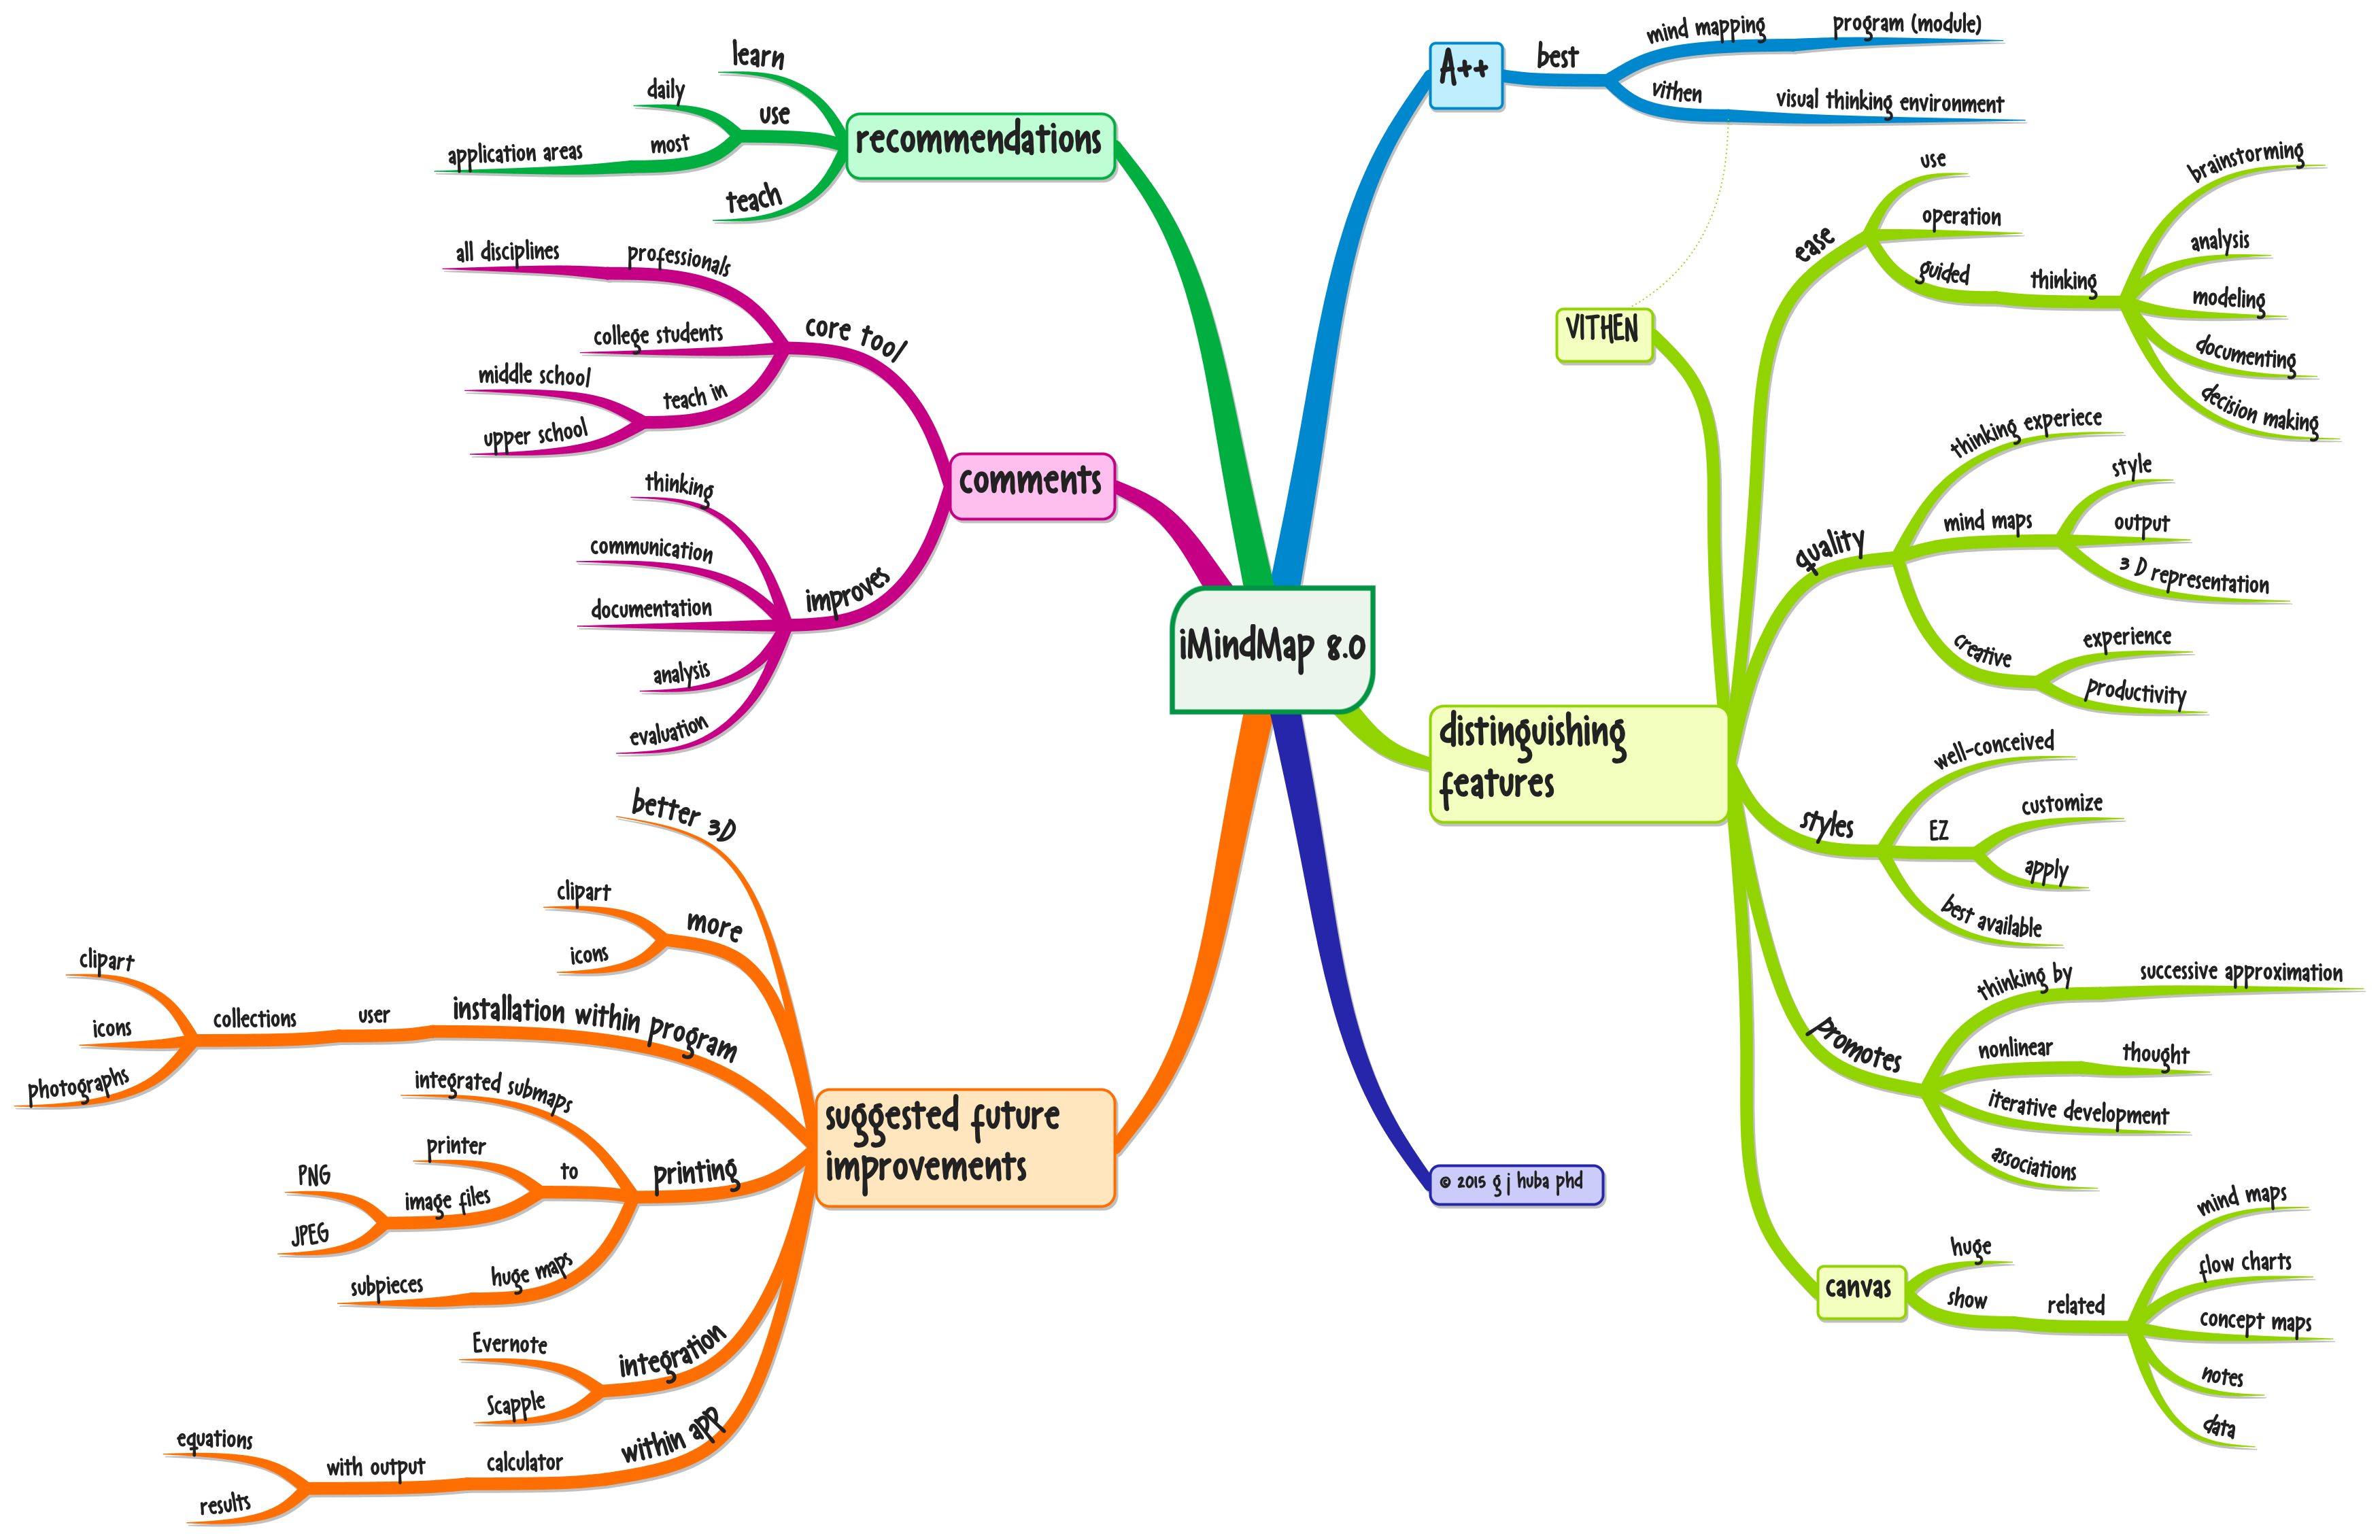 Review Of Imindmap 8 0 Mac Version on Theory Of Concept Maps